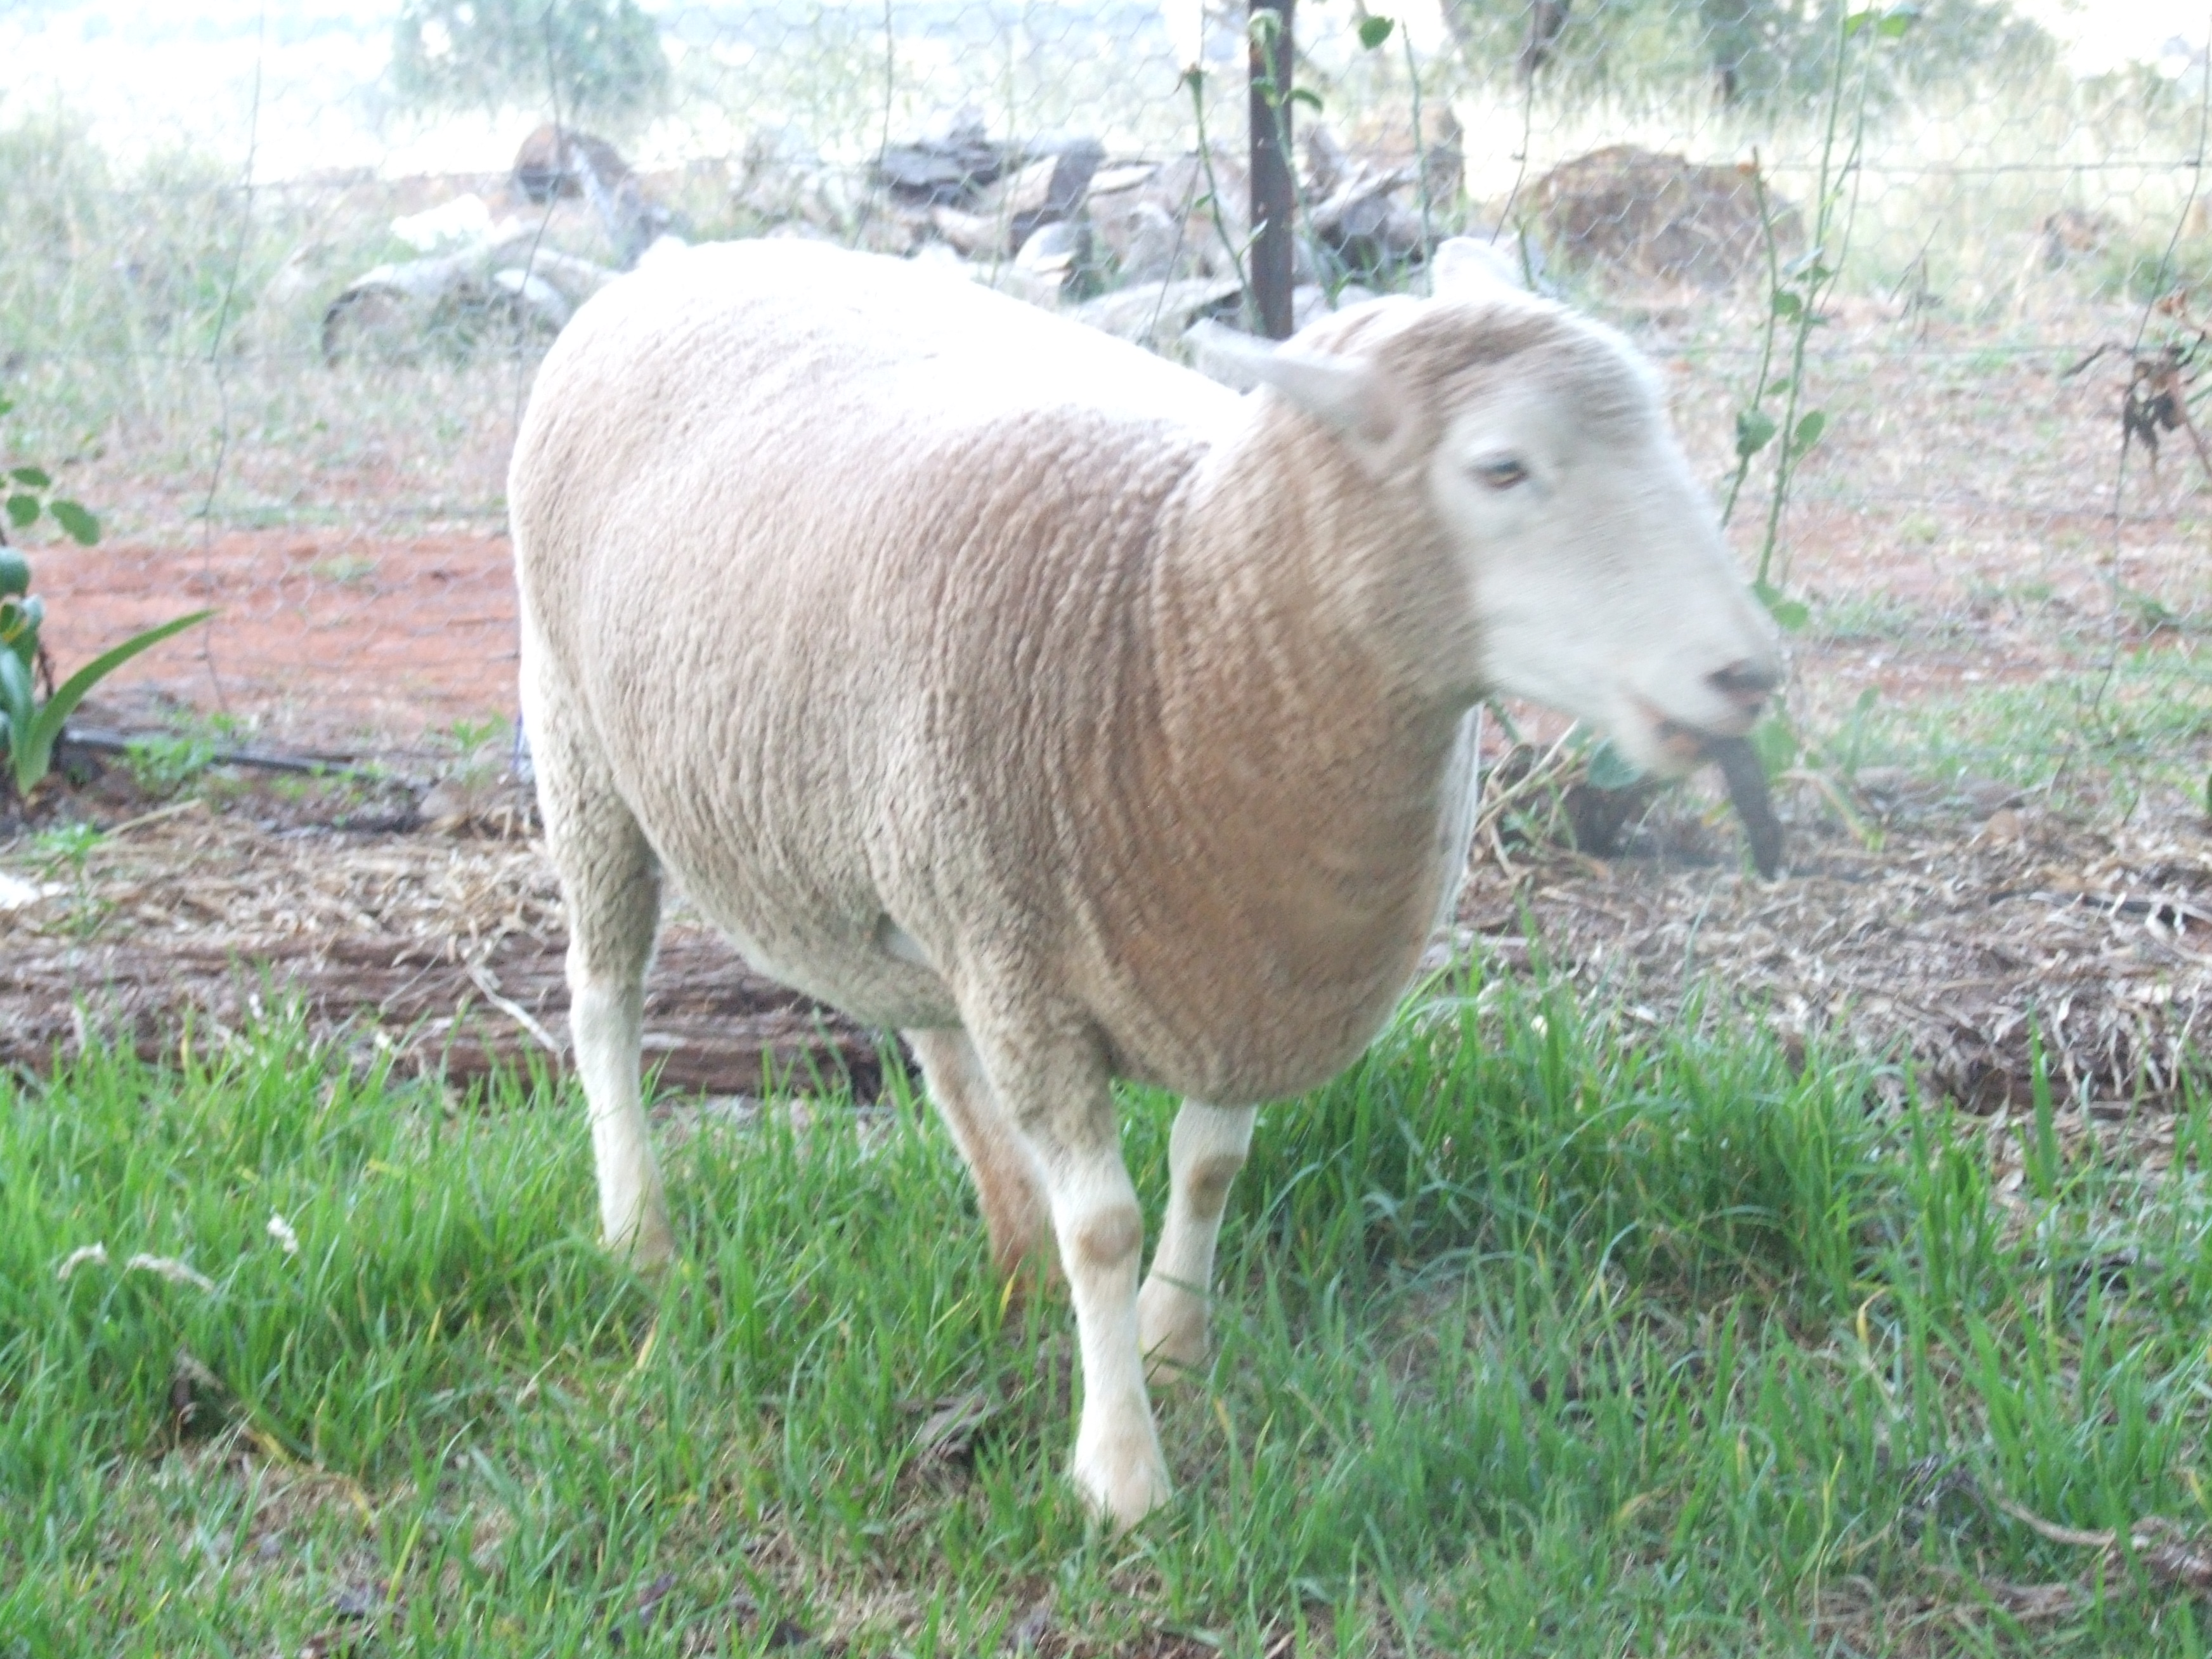 Charlie the sheep gallery image